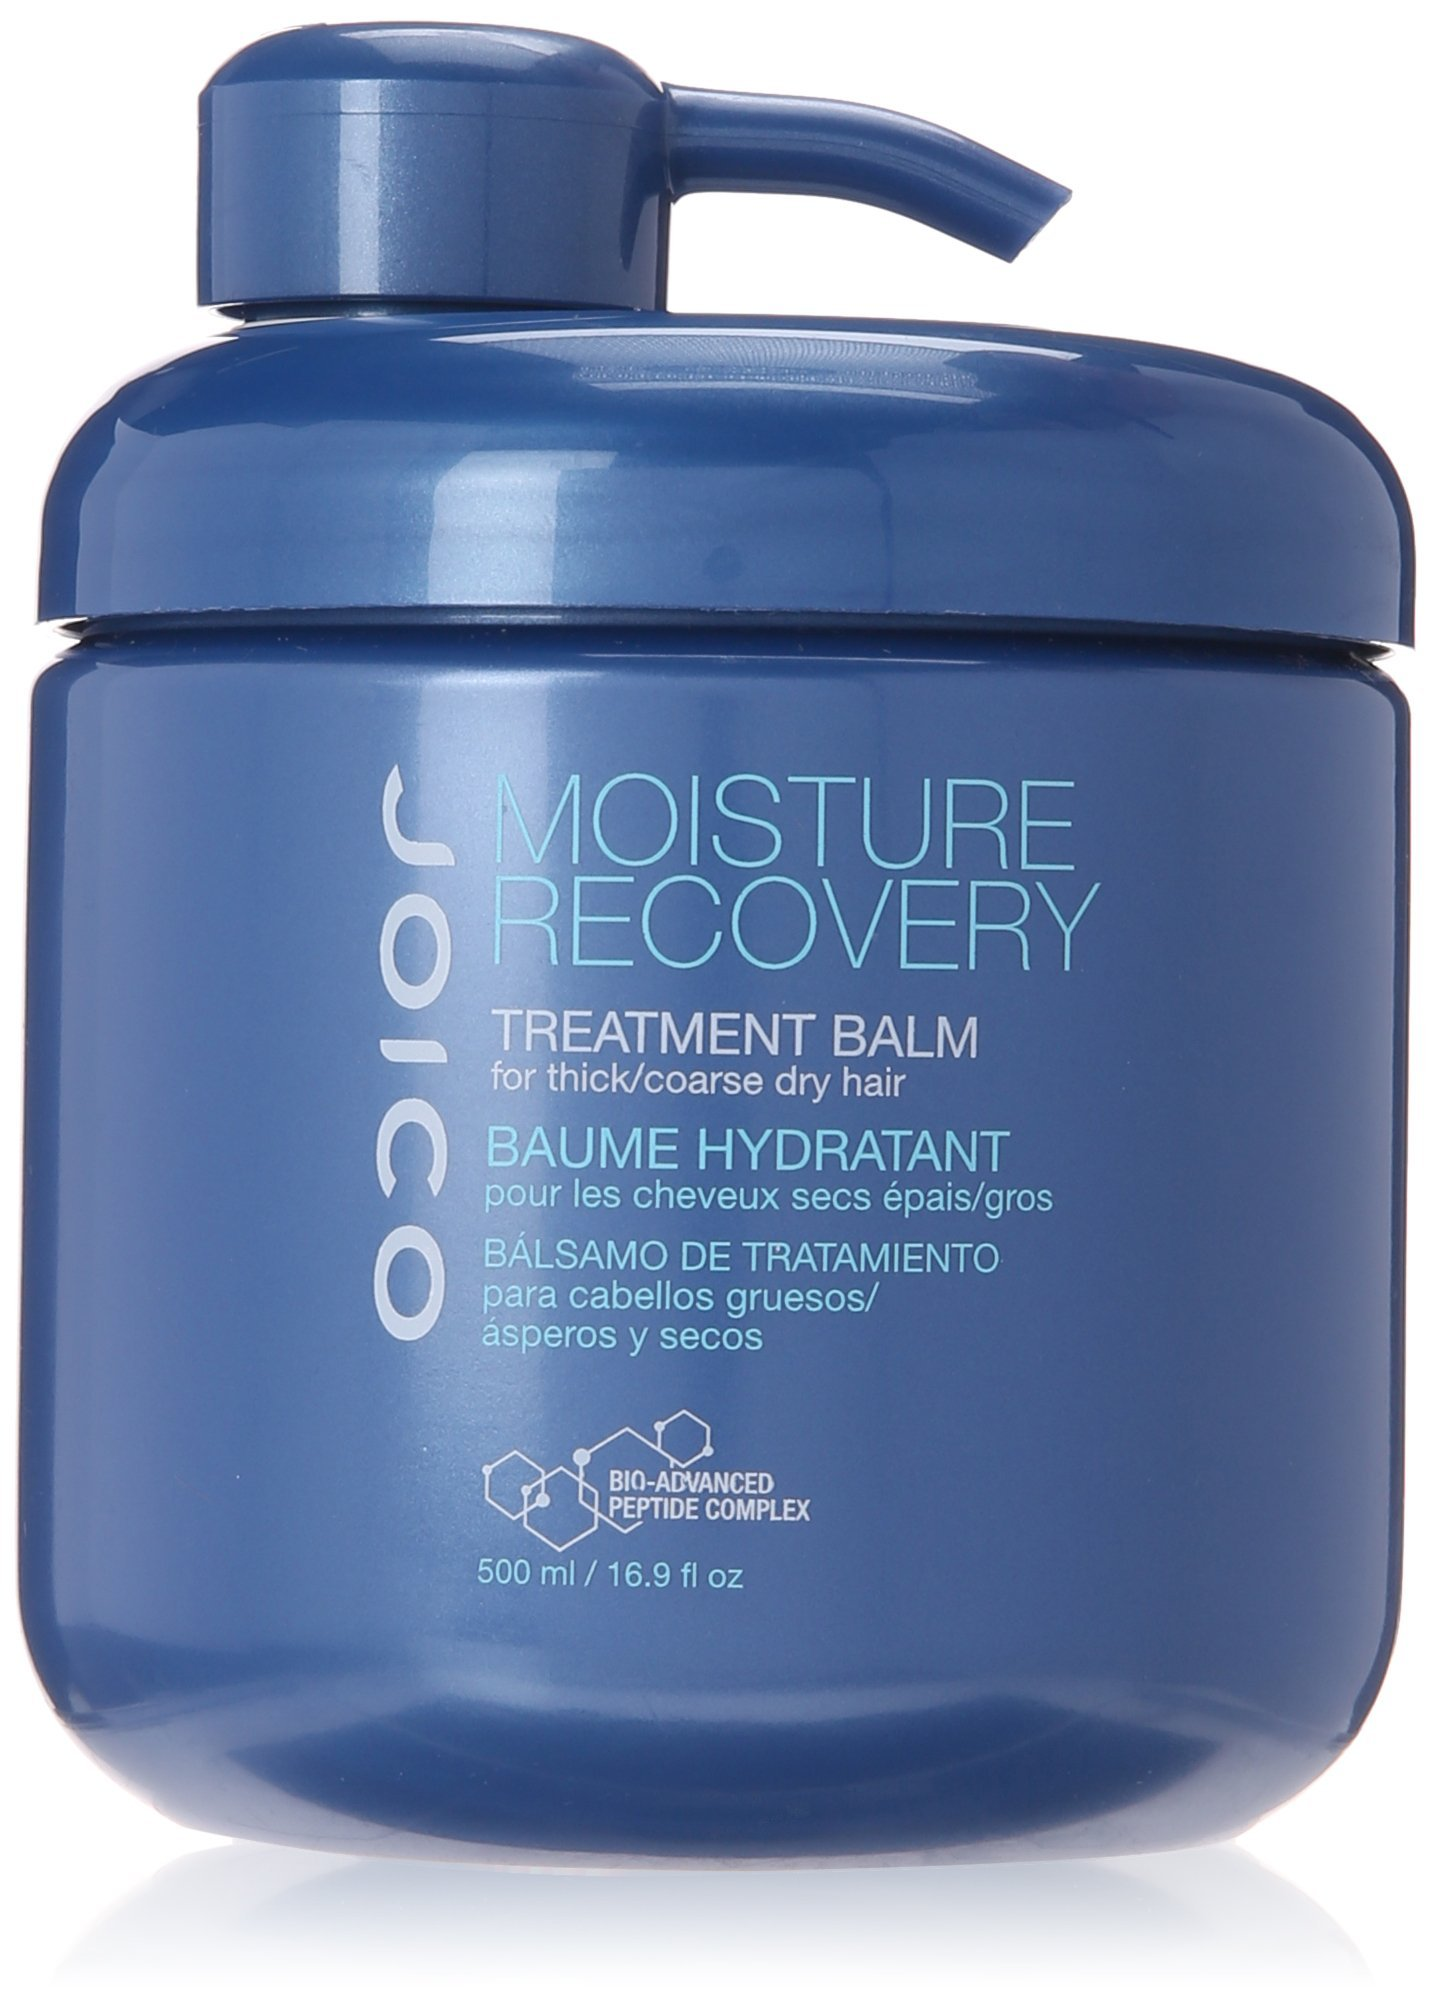 Joico Moisture Recovery Balm for Thick and Coarse Dry Hair, 16.9 fl.oz. by Joico